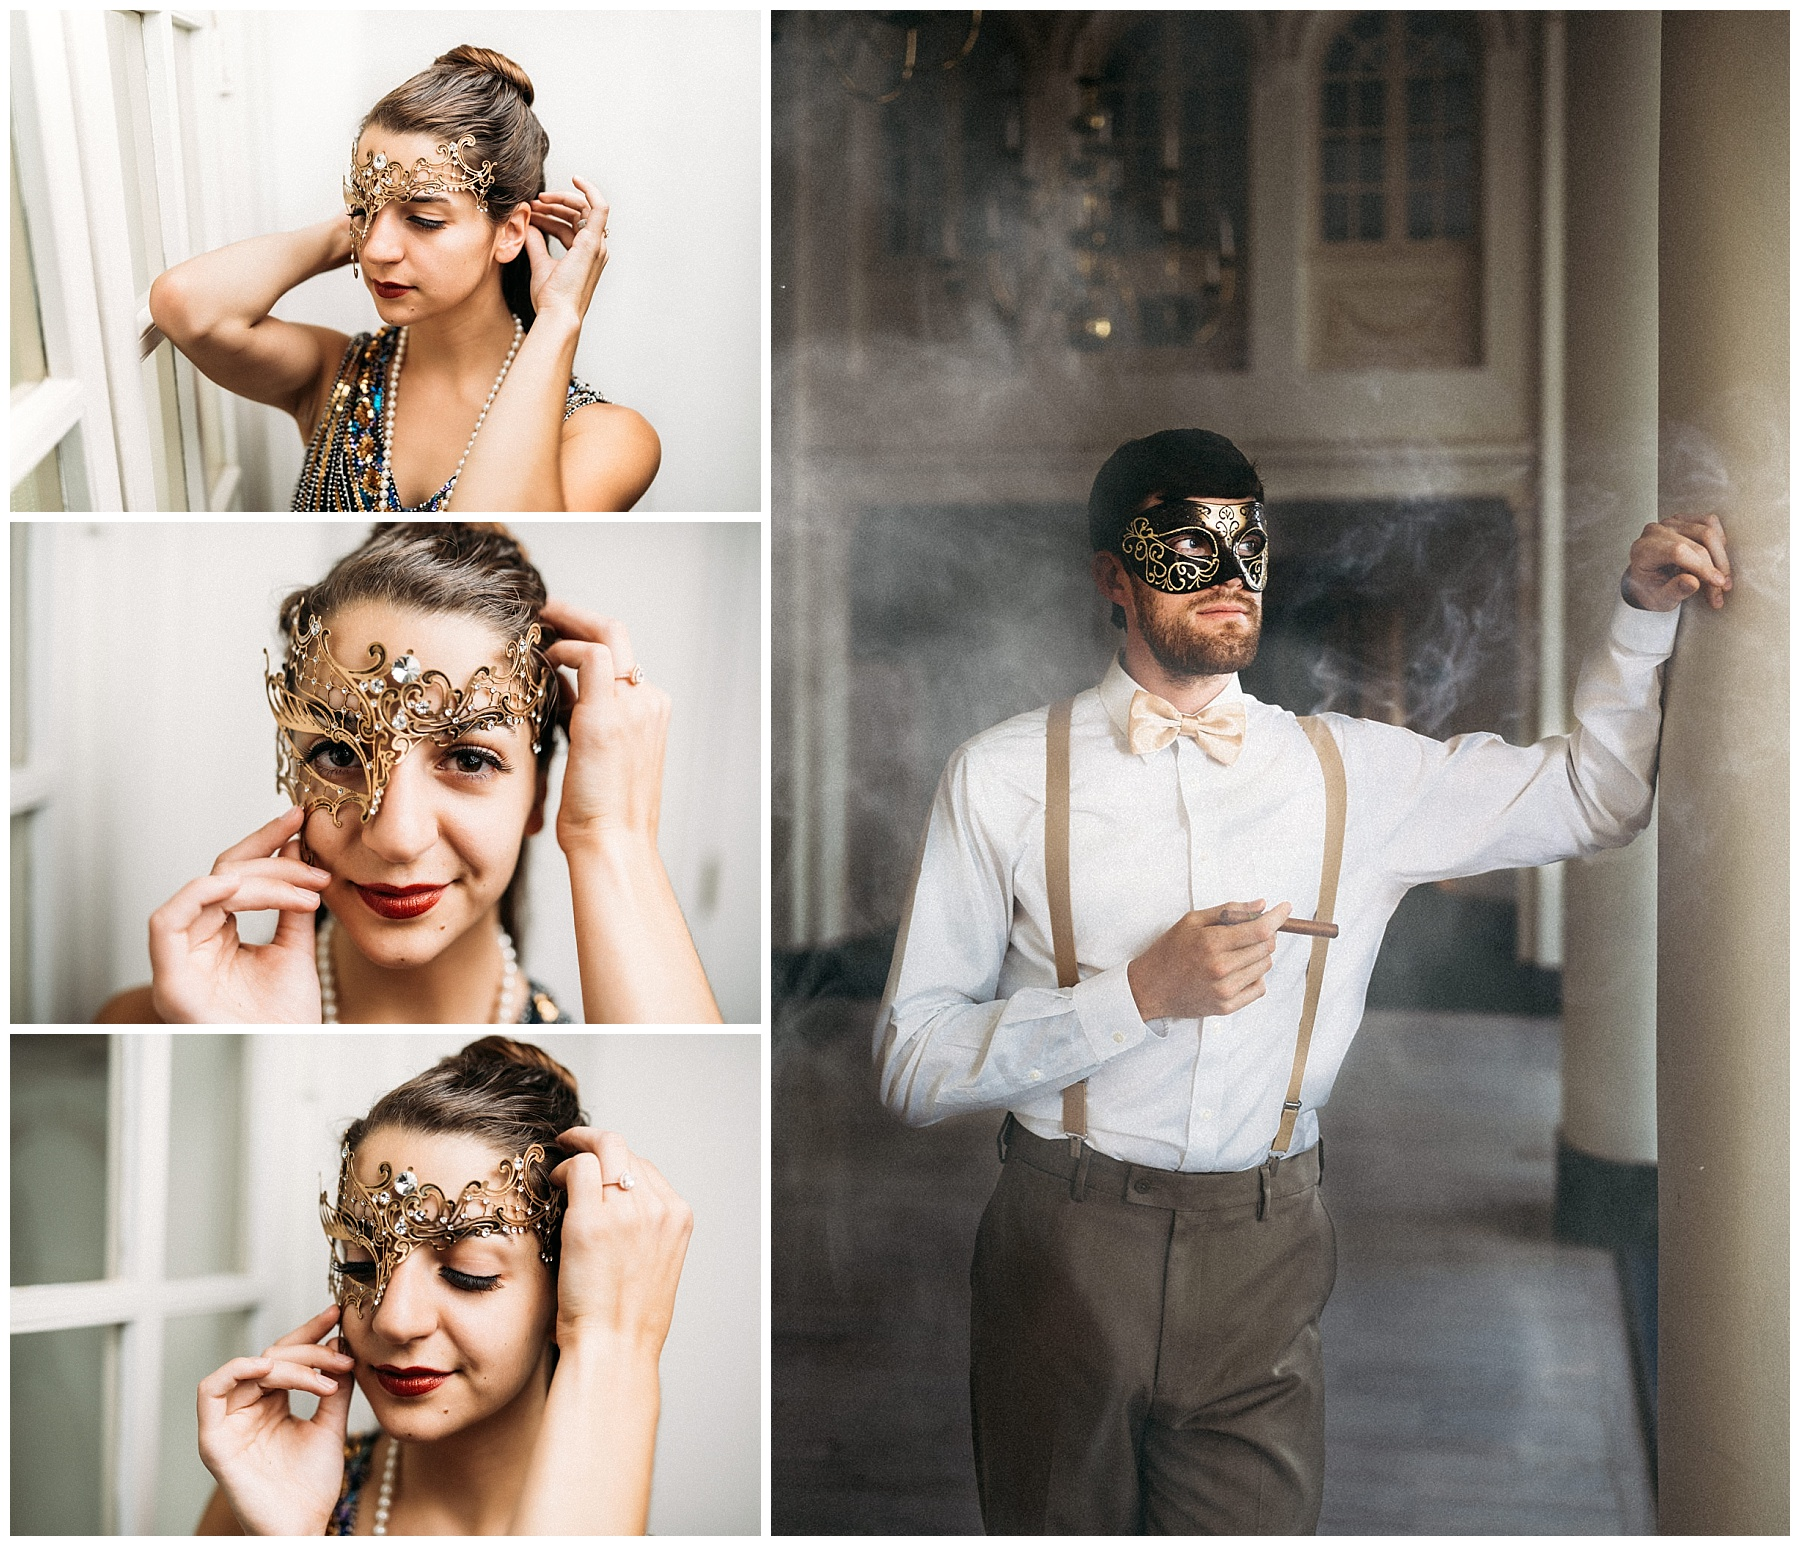 gatsby-styled-couples-shoot-final-g-web-20190707-0007_CCS-2.jpg